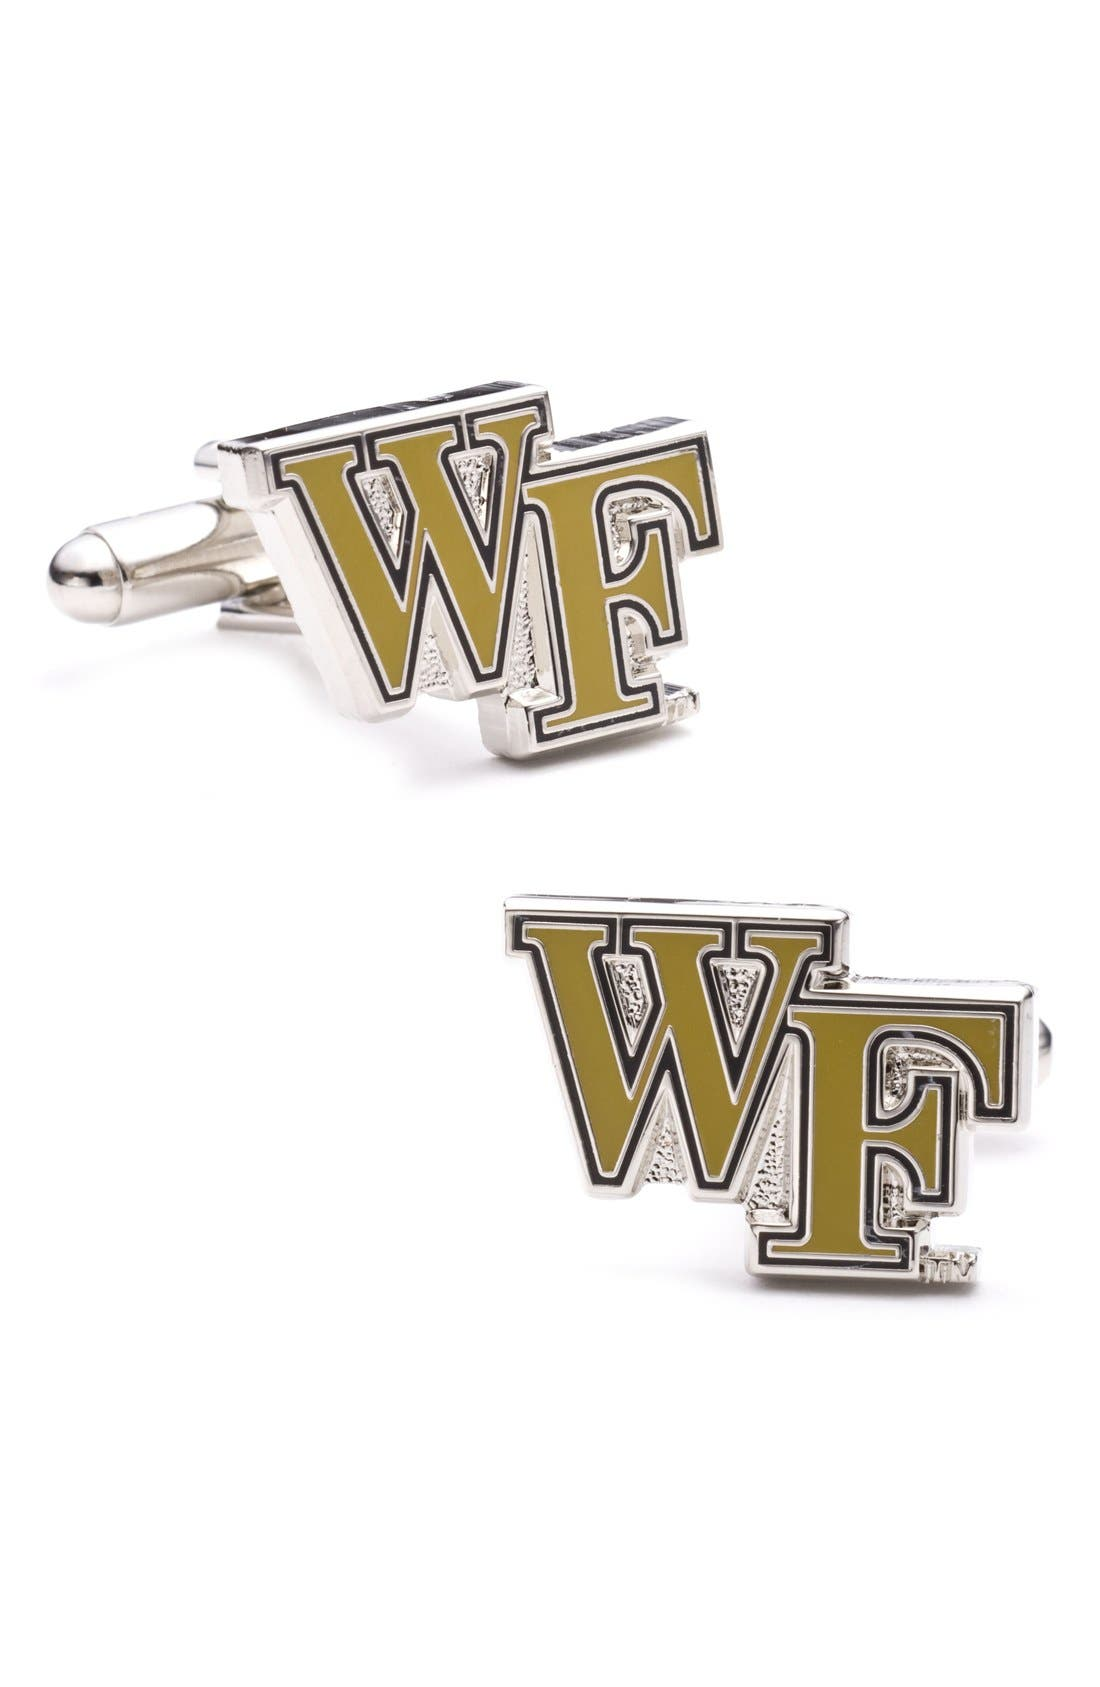 'Wake Forest Demon Deacons' Cuff Links,                             Main thumbnail 1, color,                             Yellow